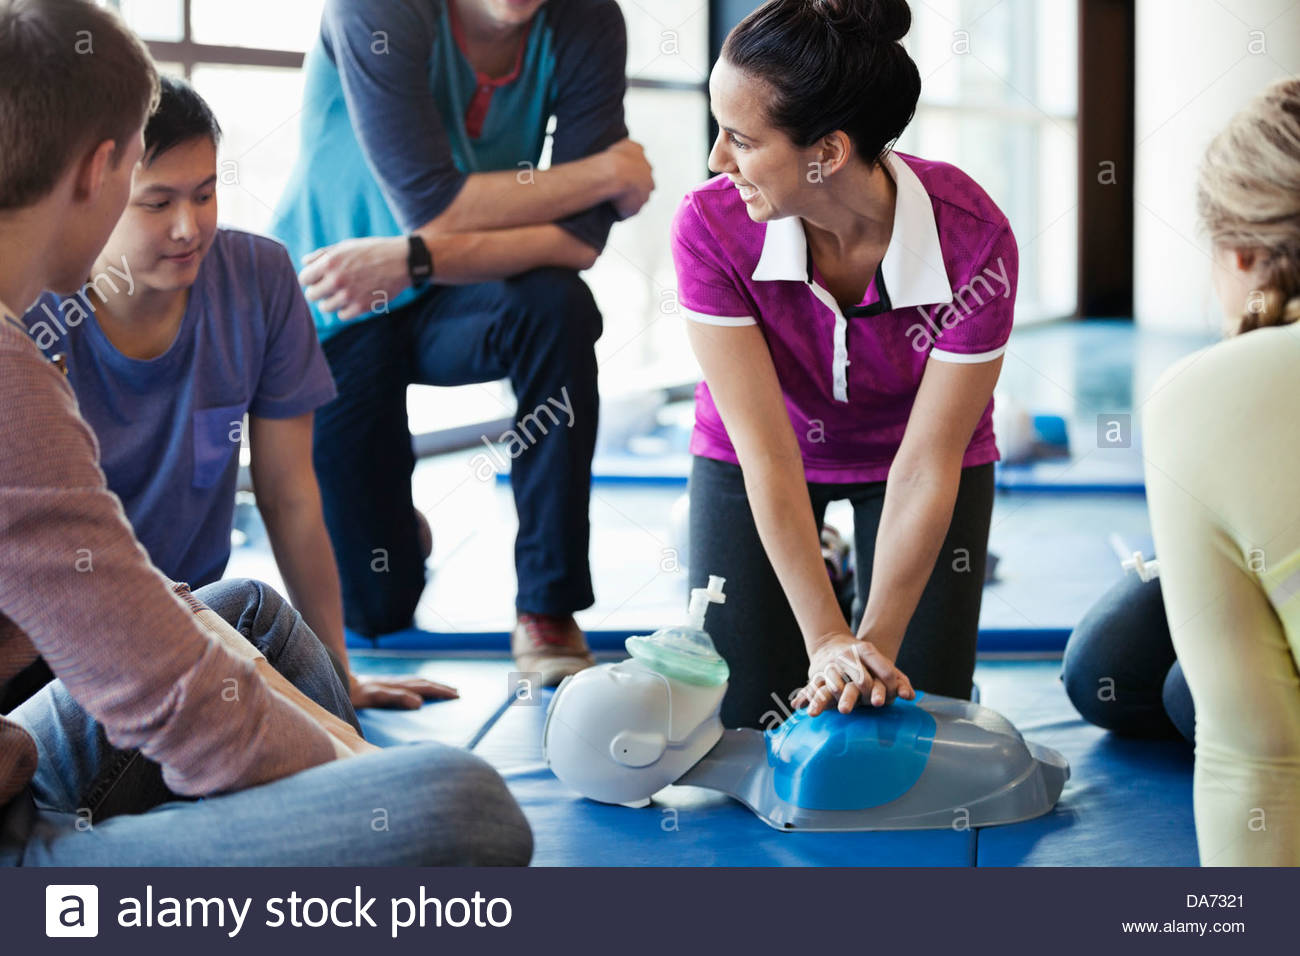 Instructor teaching CPR to class in fitness center - Stock Image